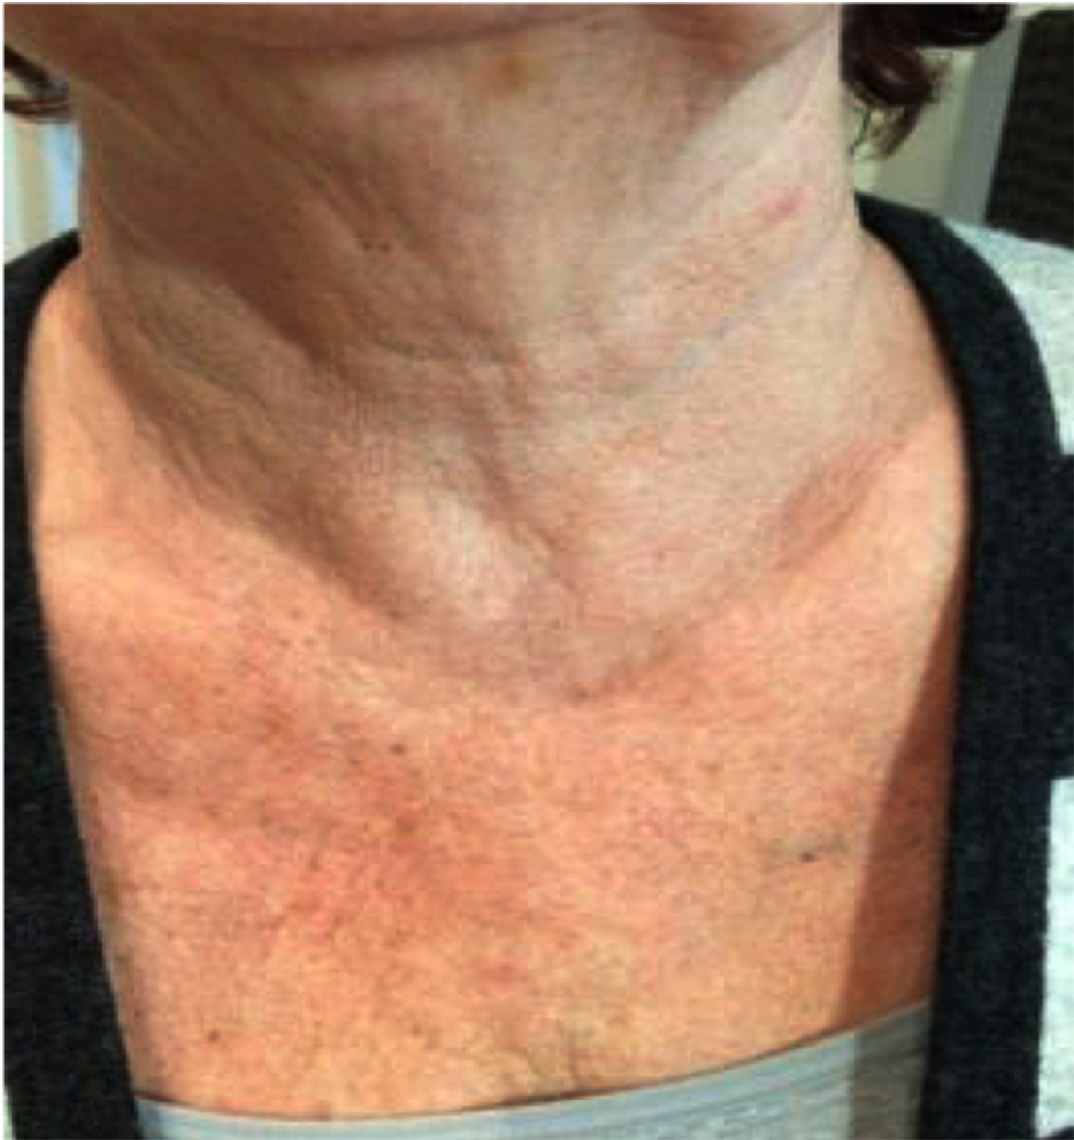 One month after single treatment of the décolletage